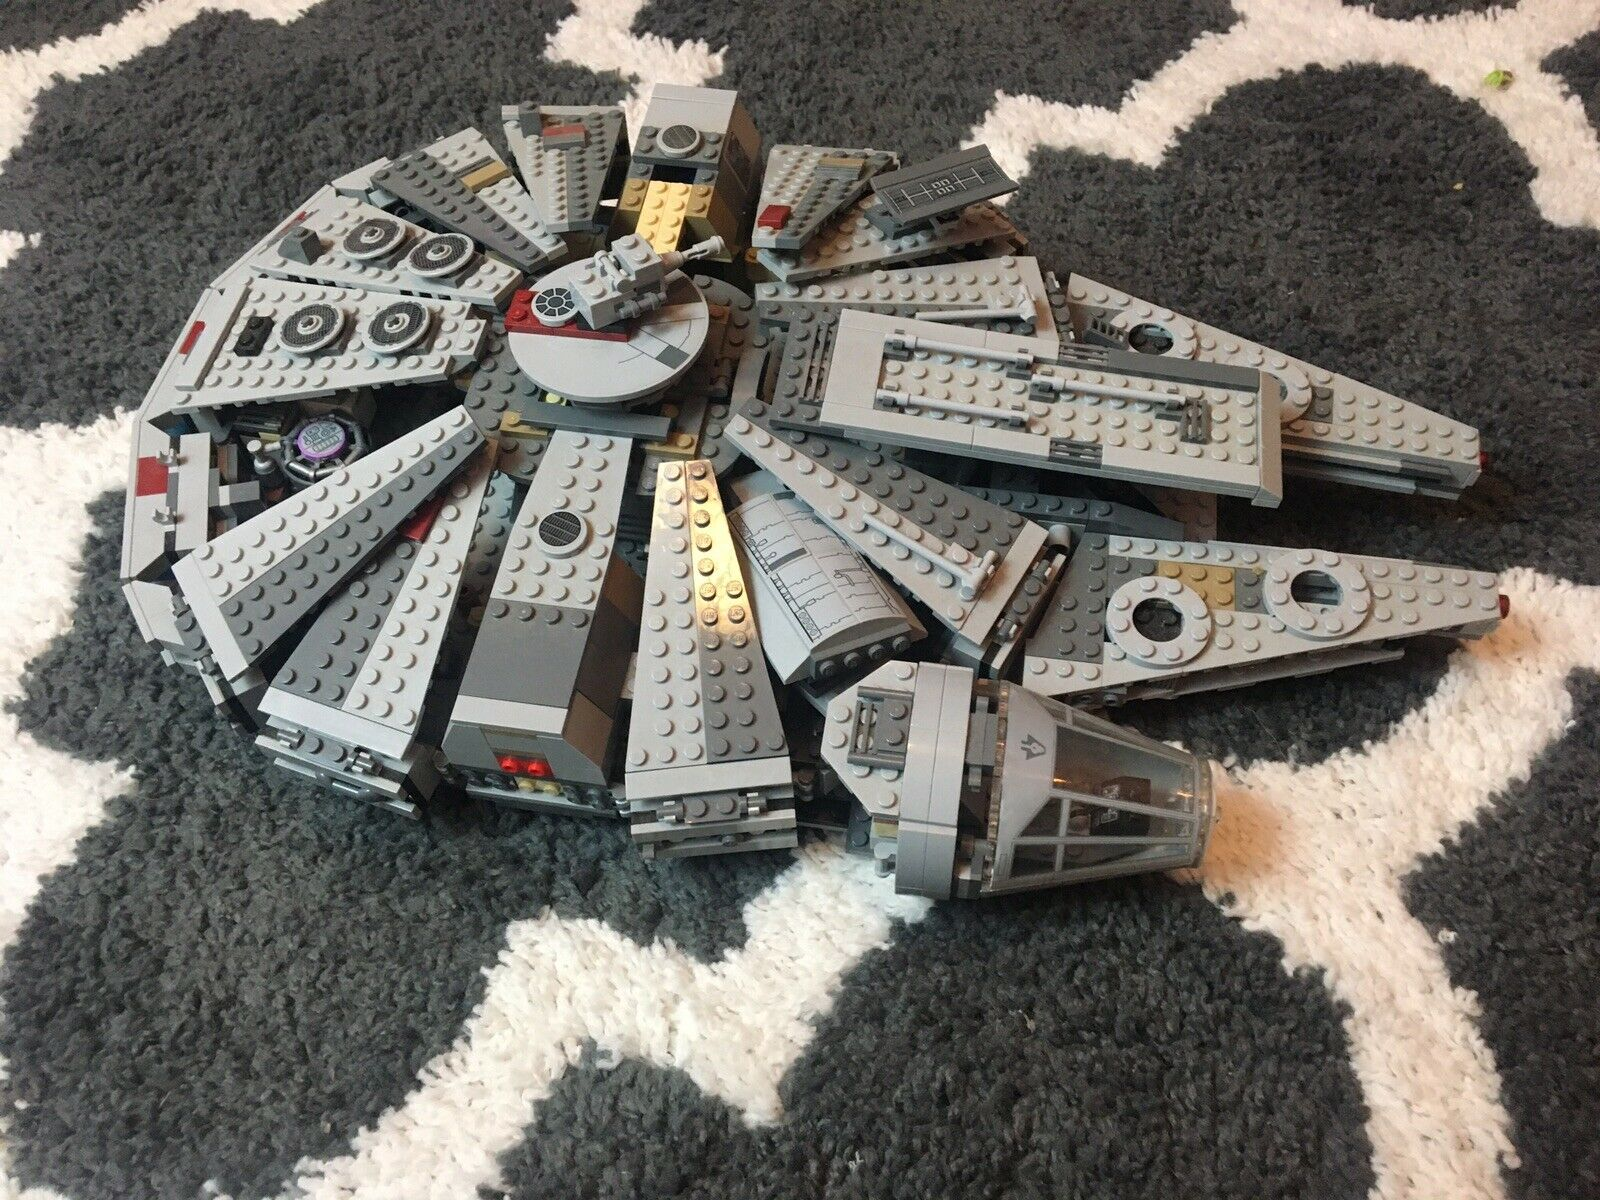 Lego star wars millennium falcon USED (COMES AS SEEN IN THE PICTURE)